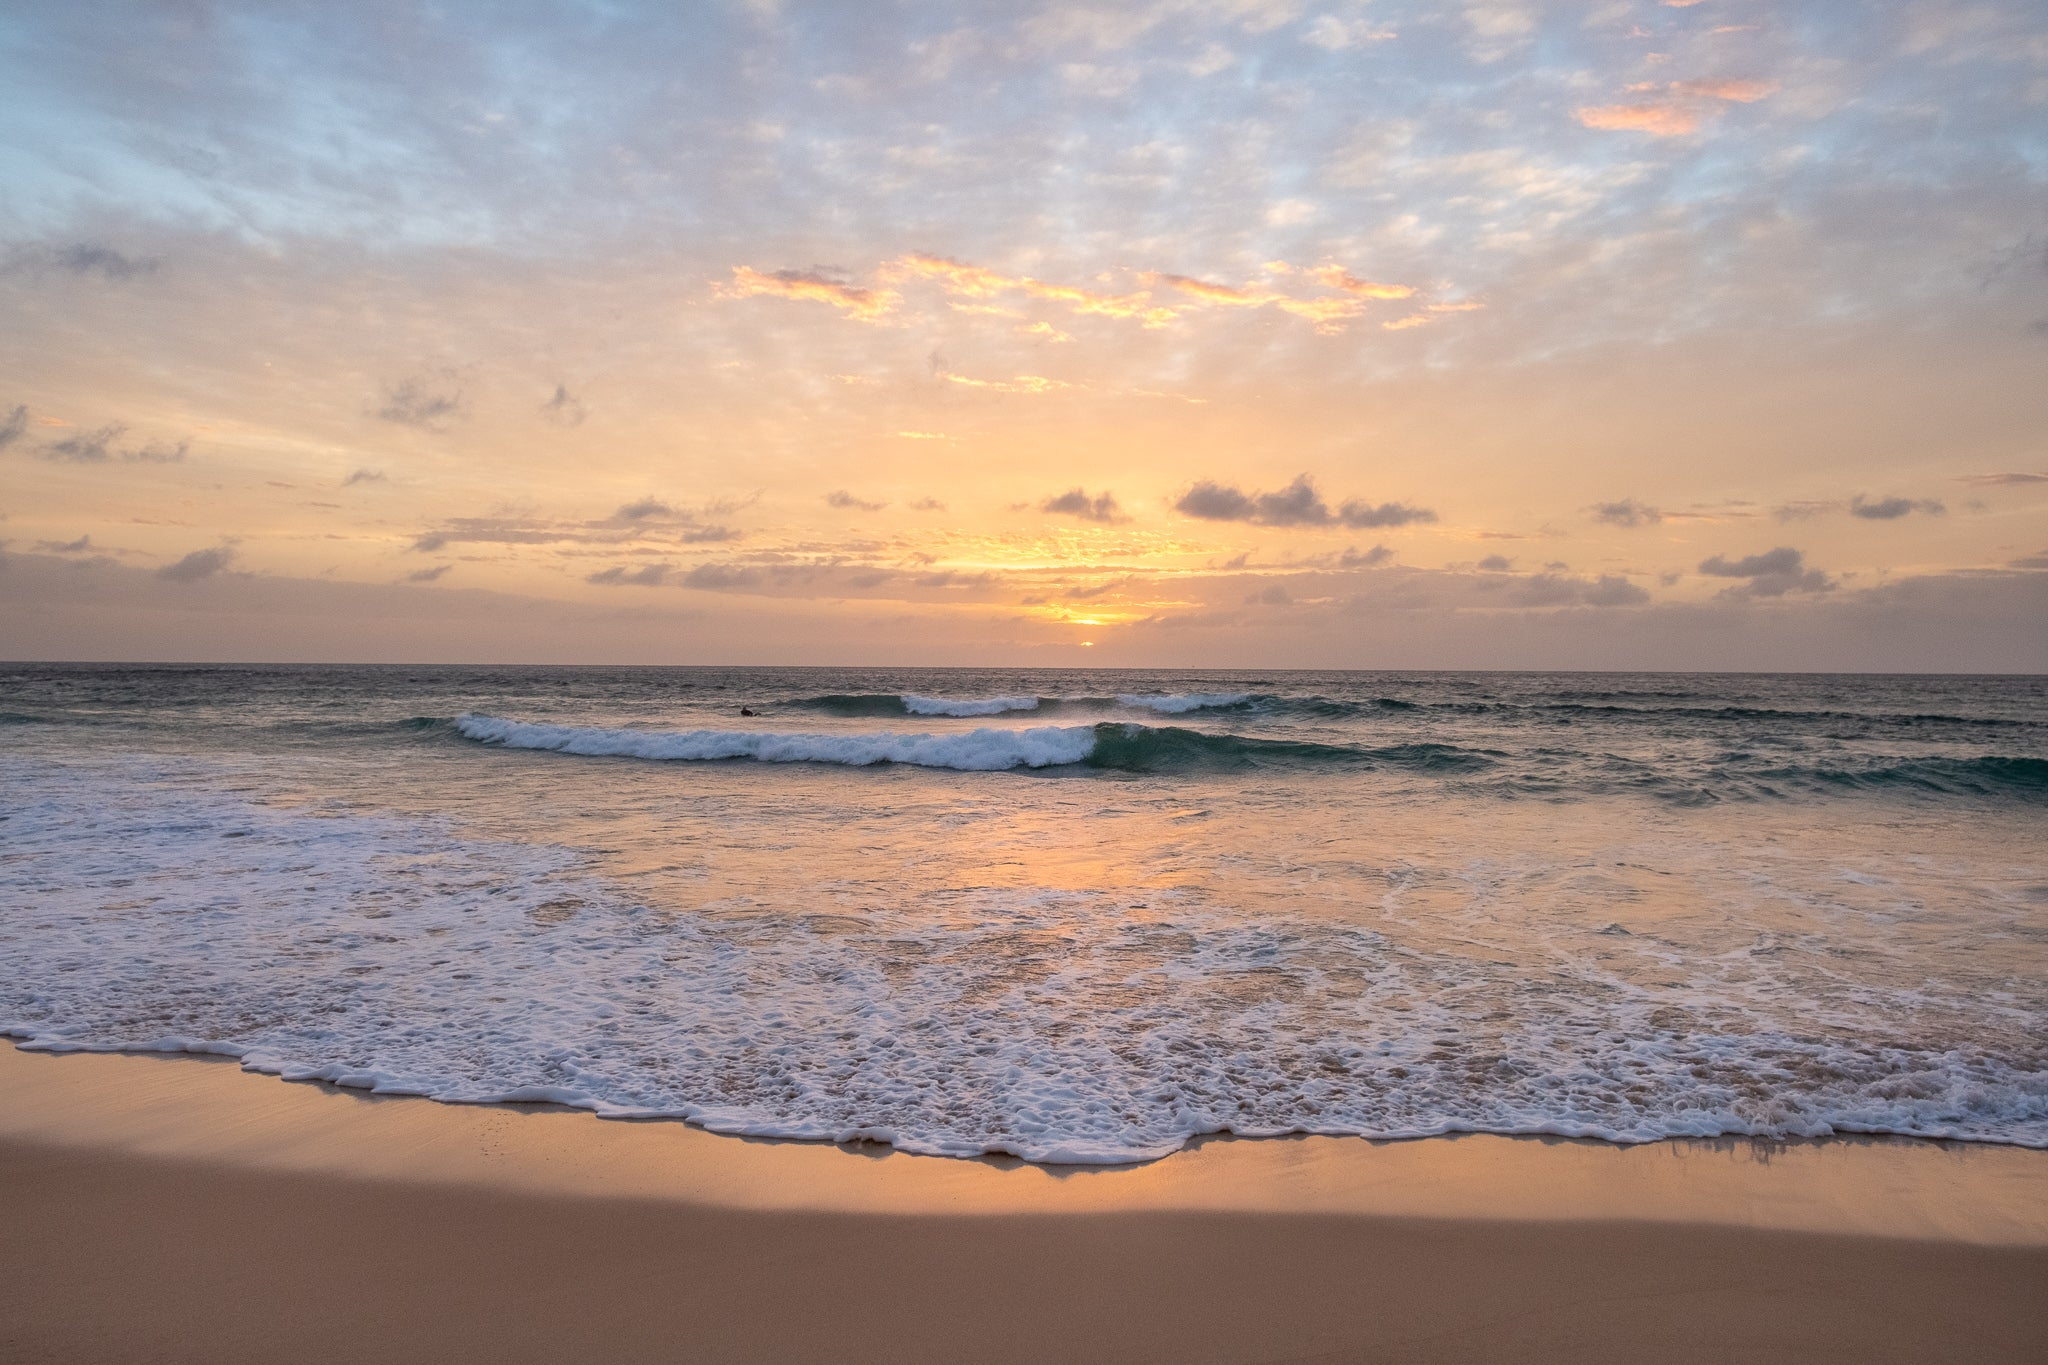 Sunrise photo from the 28th September 2019 at Manly Beach in Sydney